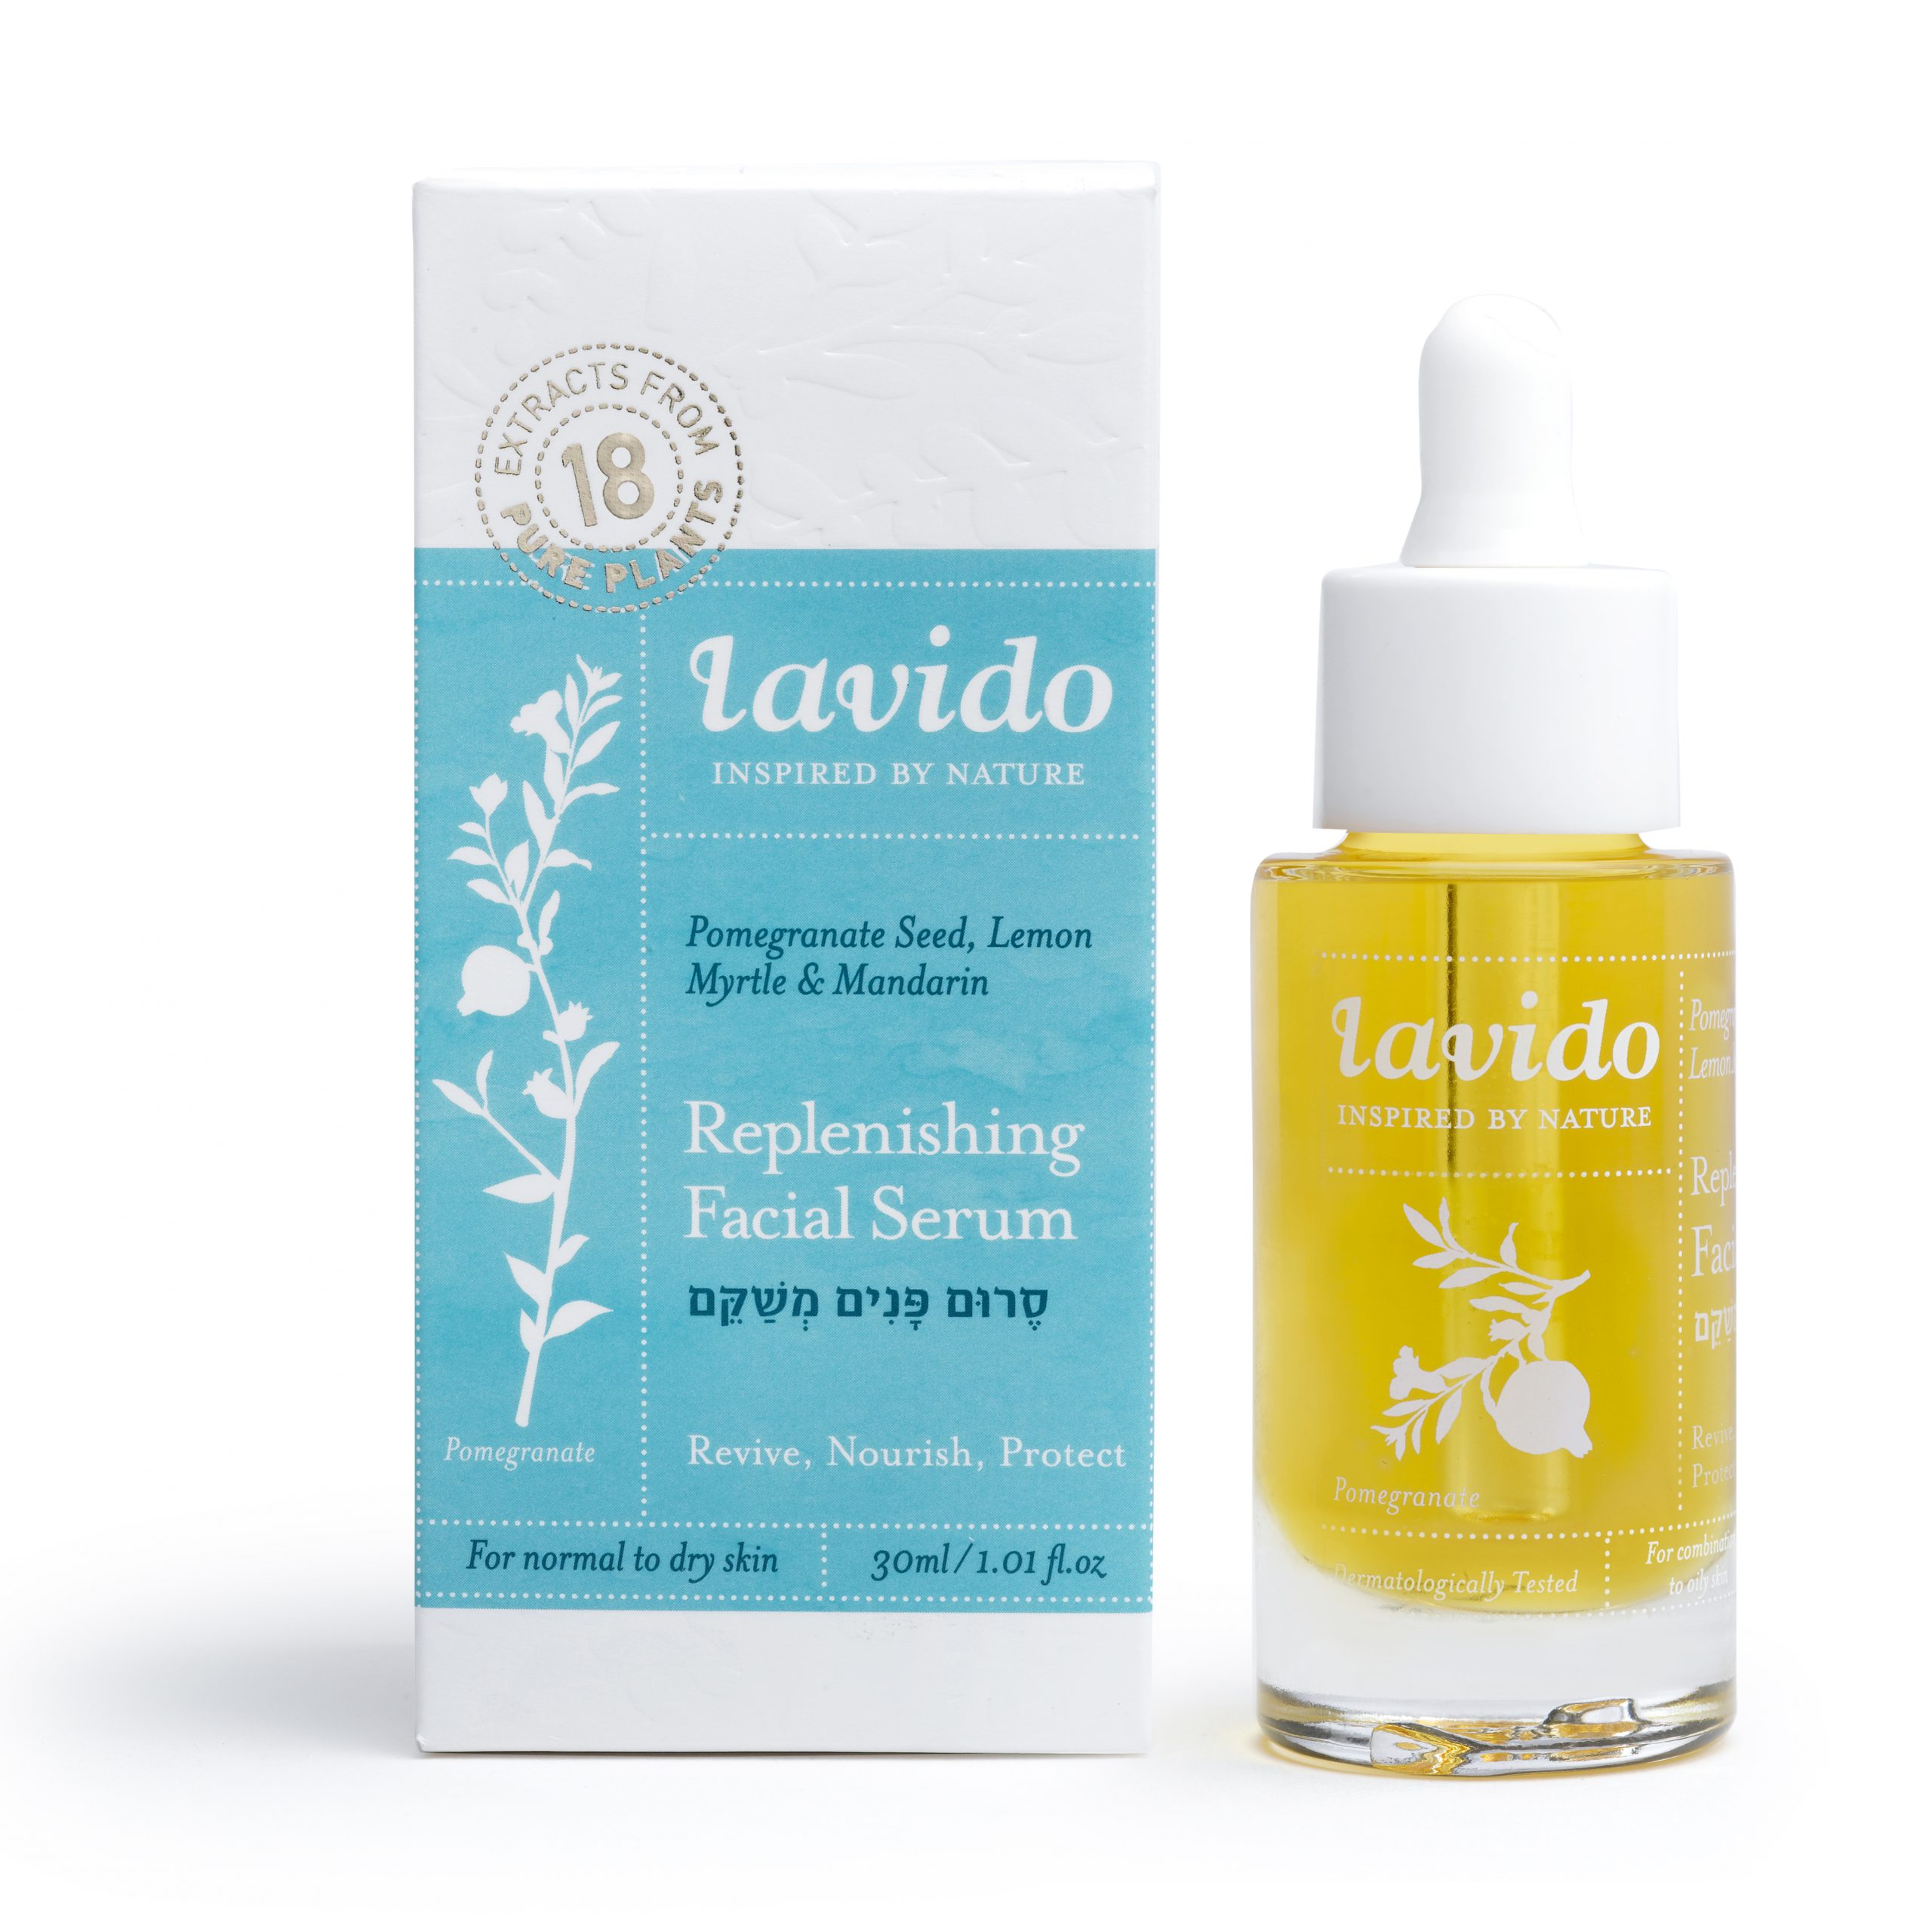 lavido, face oil, Replenishing Facial Serum